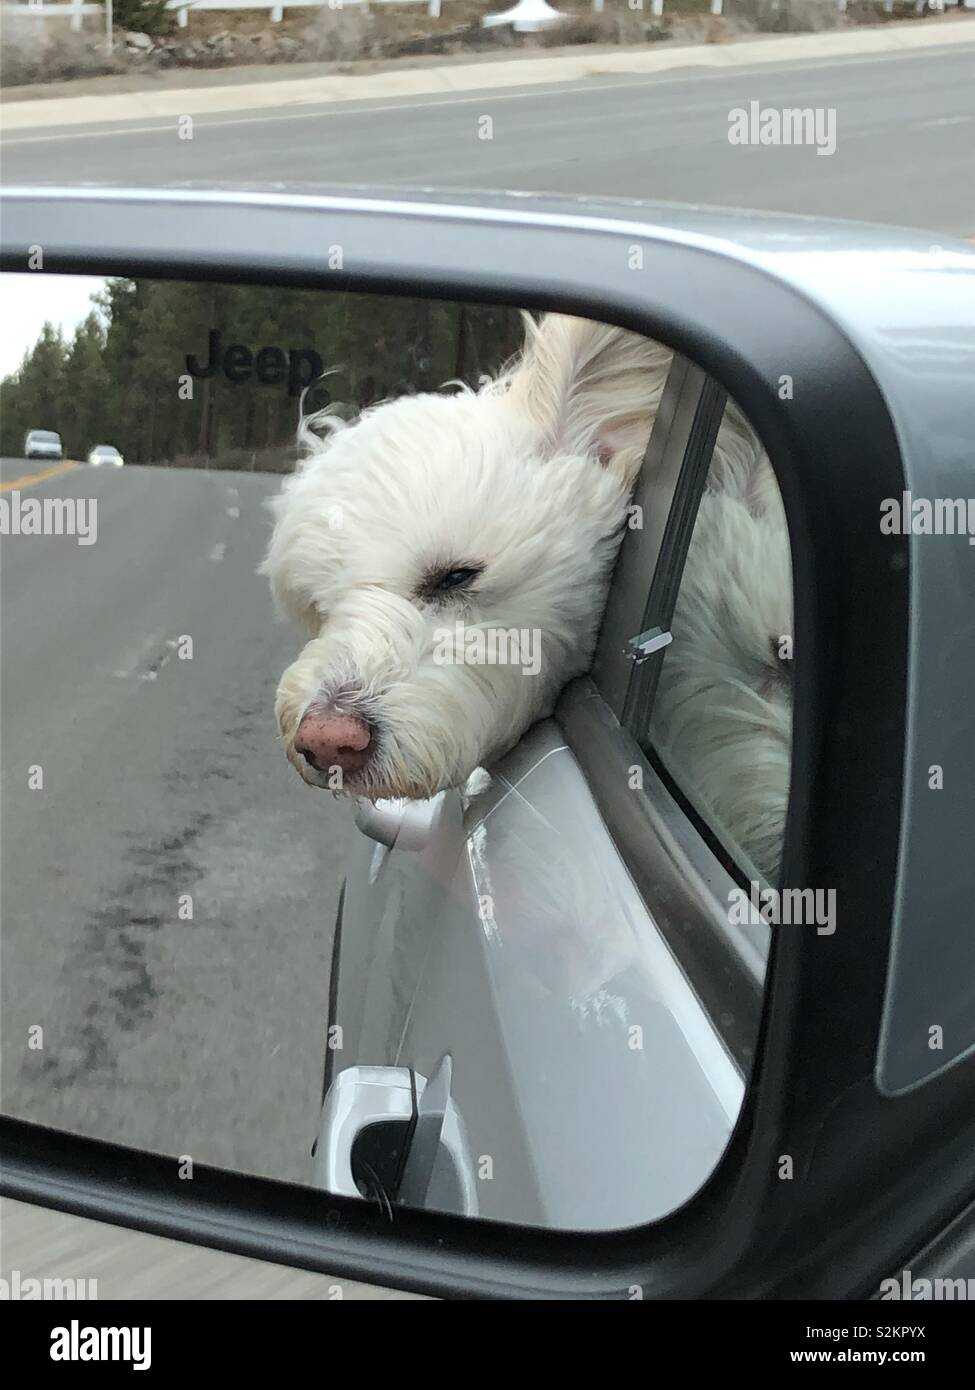 White dog with his head out the window enjoying the ride in the car and wind in his face - Stock Image